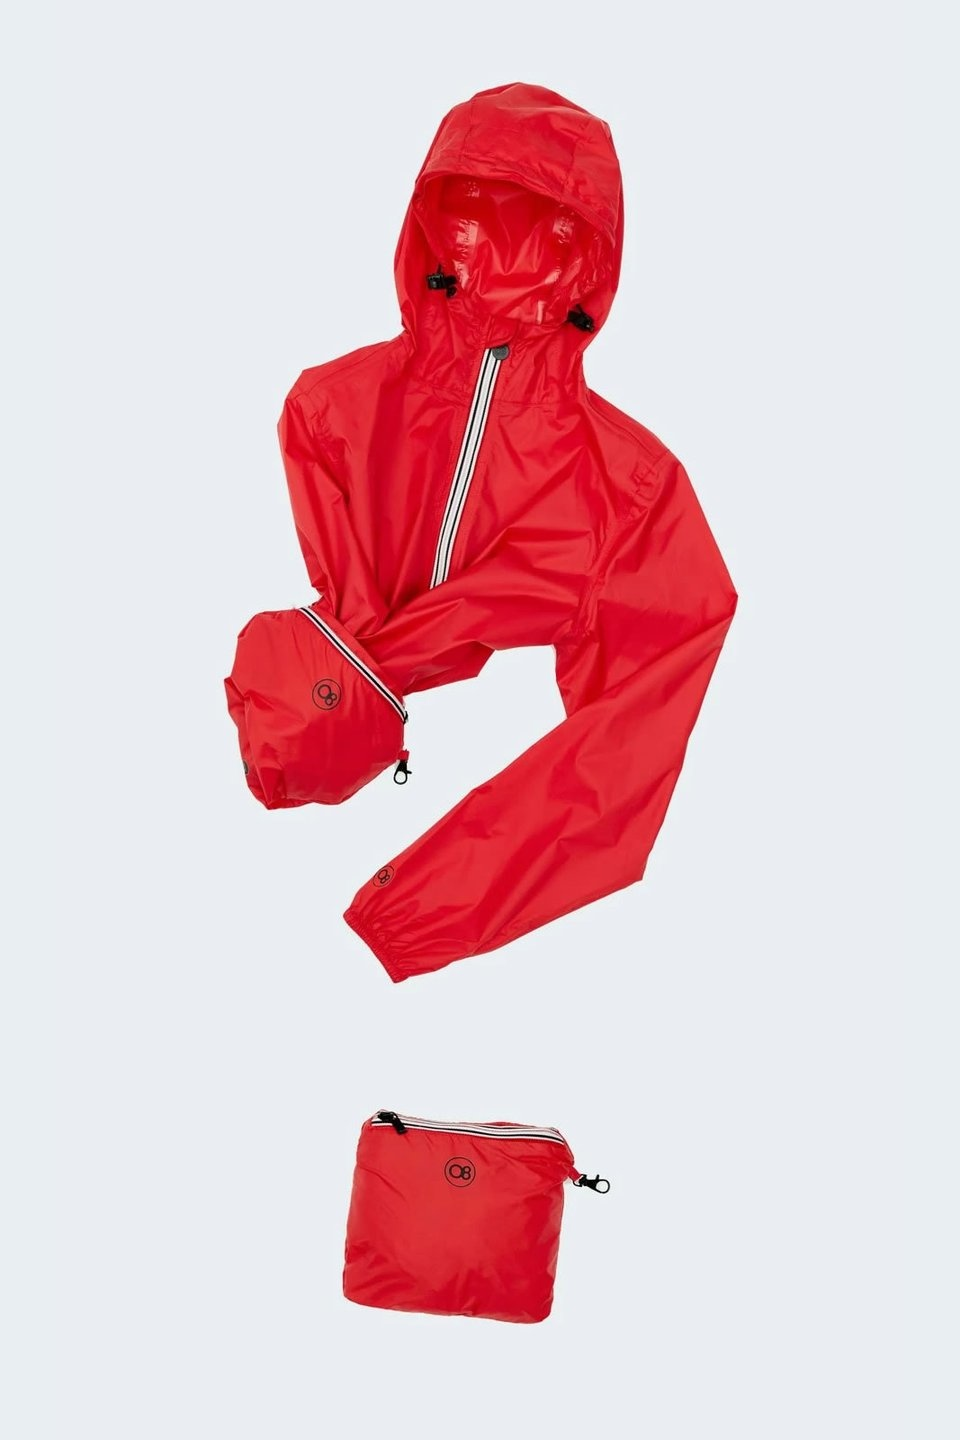 O8 packable jacket - packed